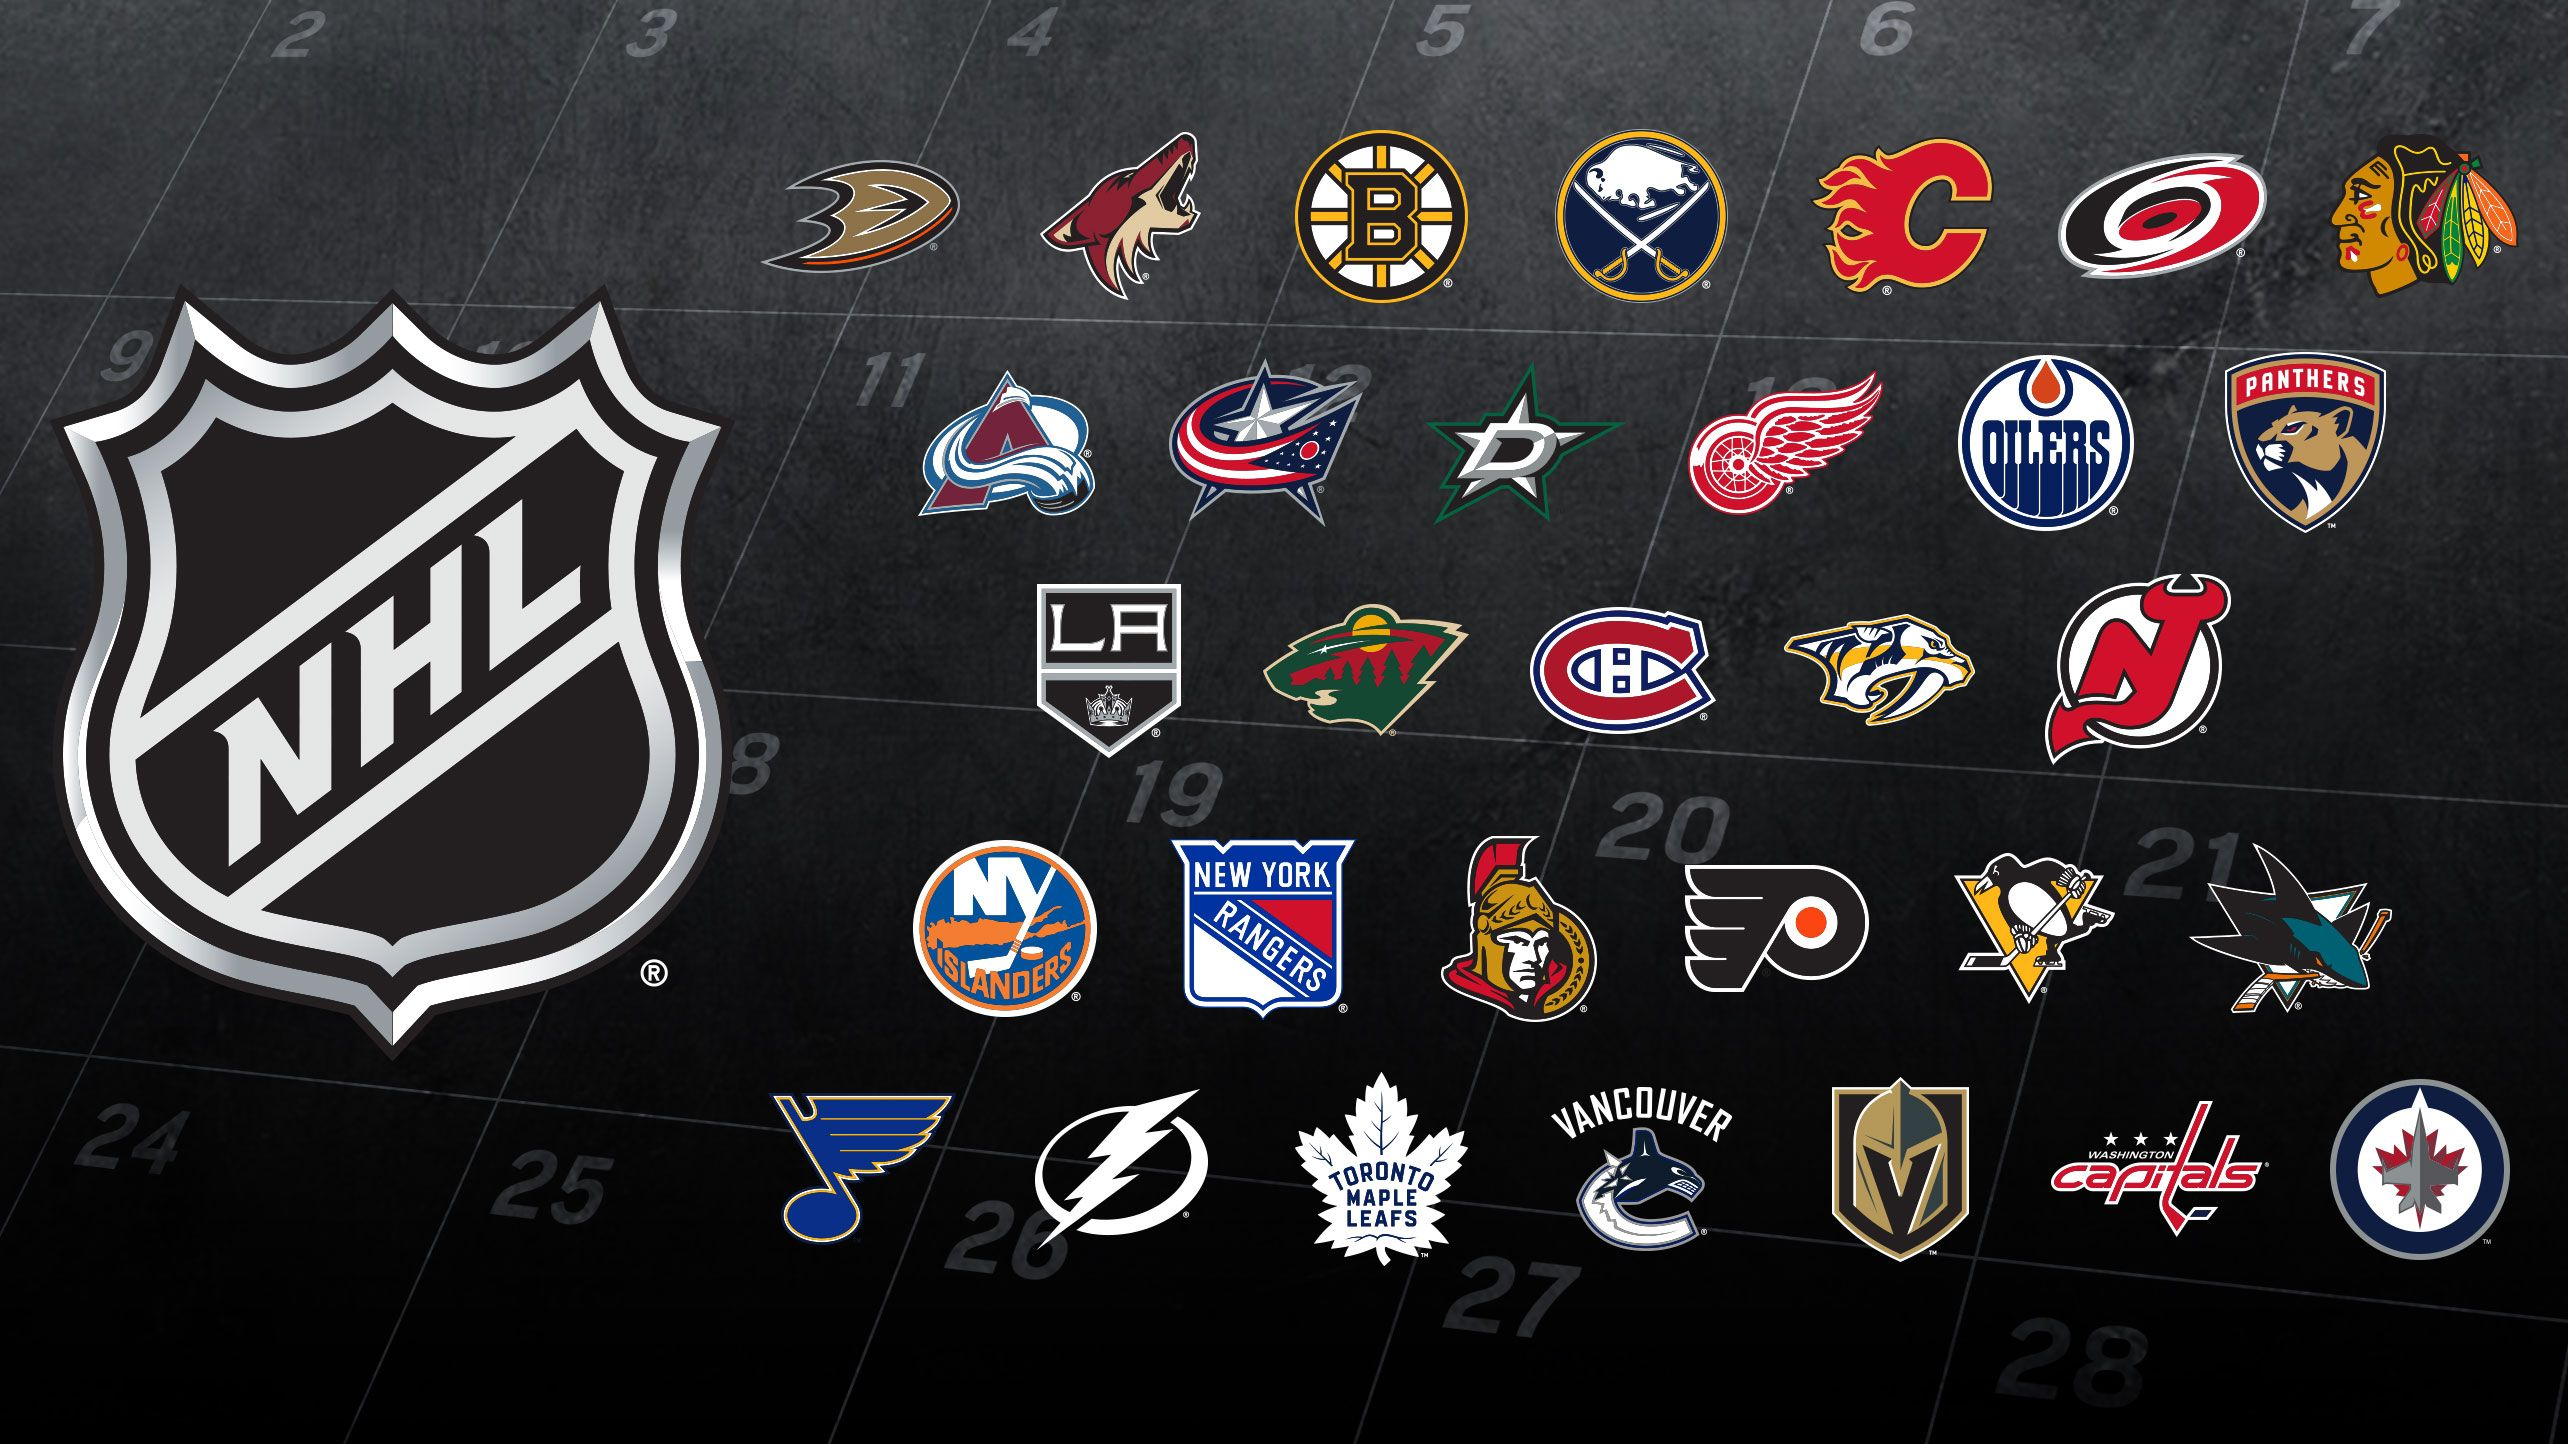 Official site of the national hockey league | nhl.com